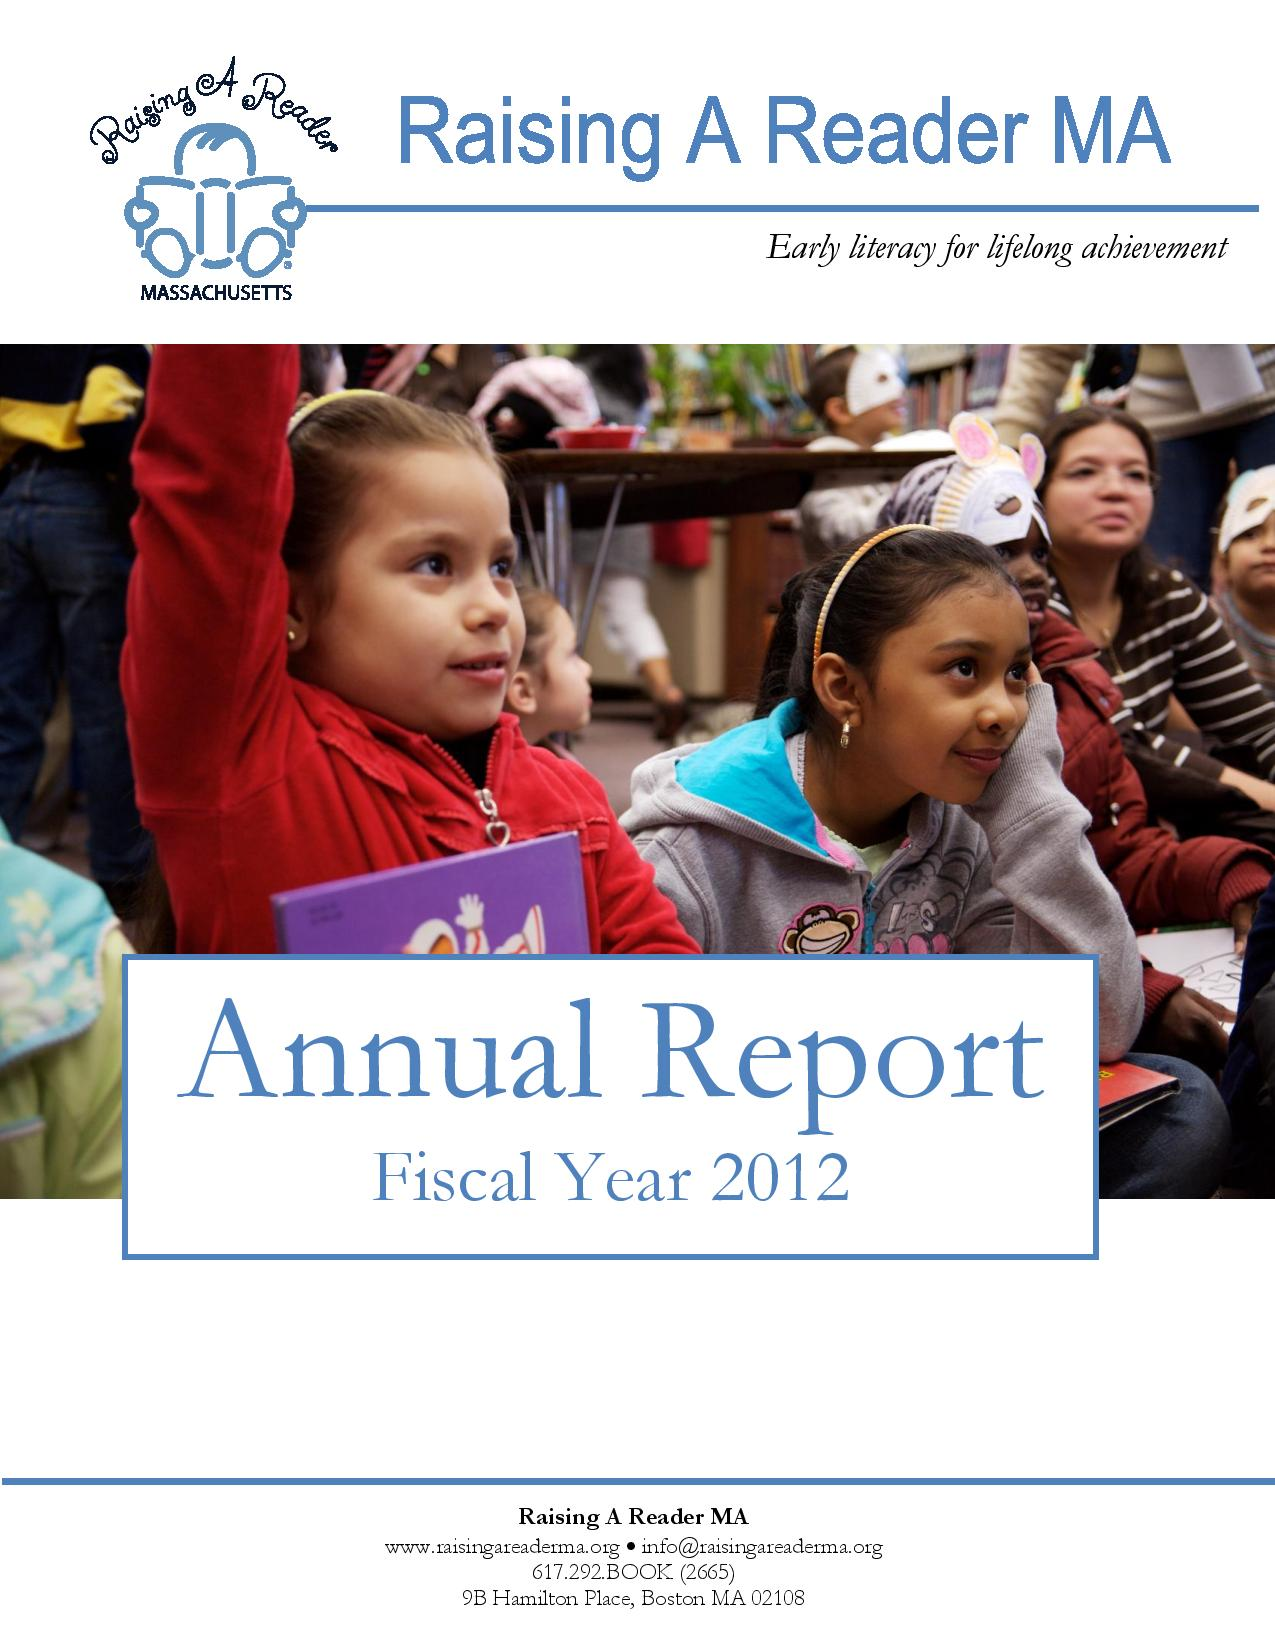 Raising-A-Reader-MA-Annual-Report-FYE-2012-page-001